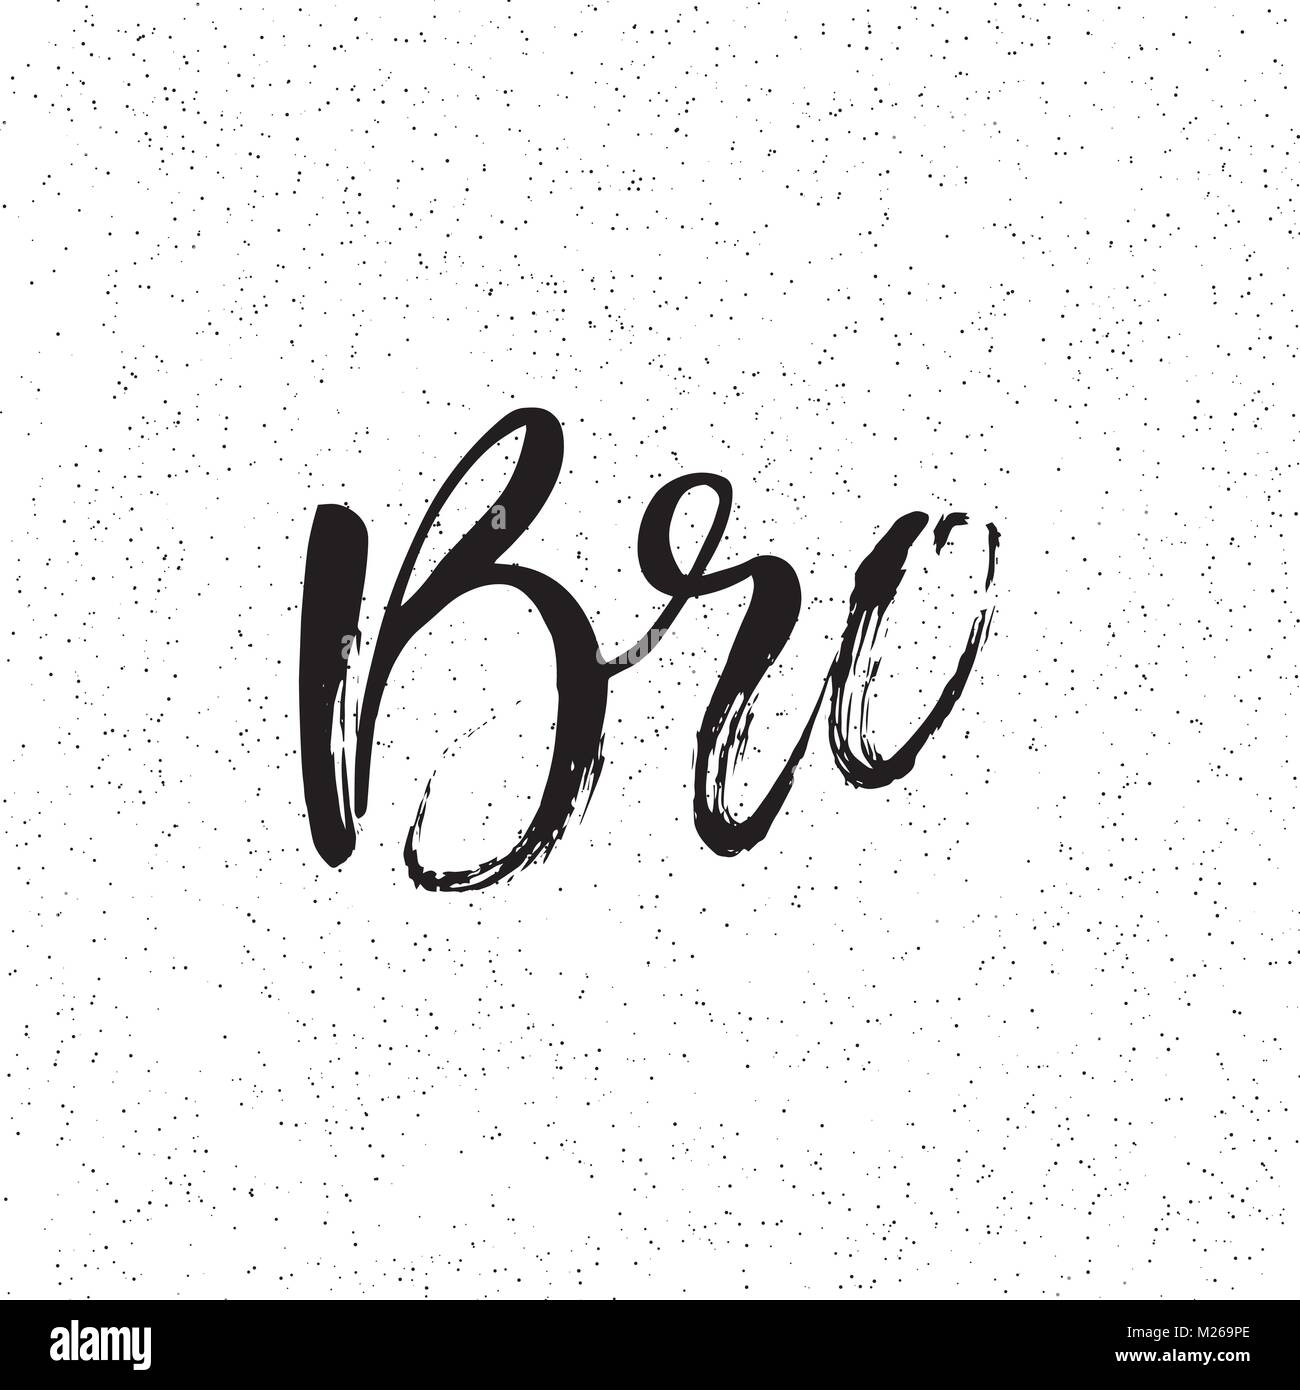 Ink Hand Lettering Modern Brush Calligraphy Handwritten Phrase Inspiration Graphic Design Typography Element Rough Simple Vector Sign